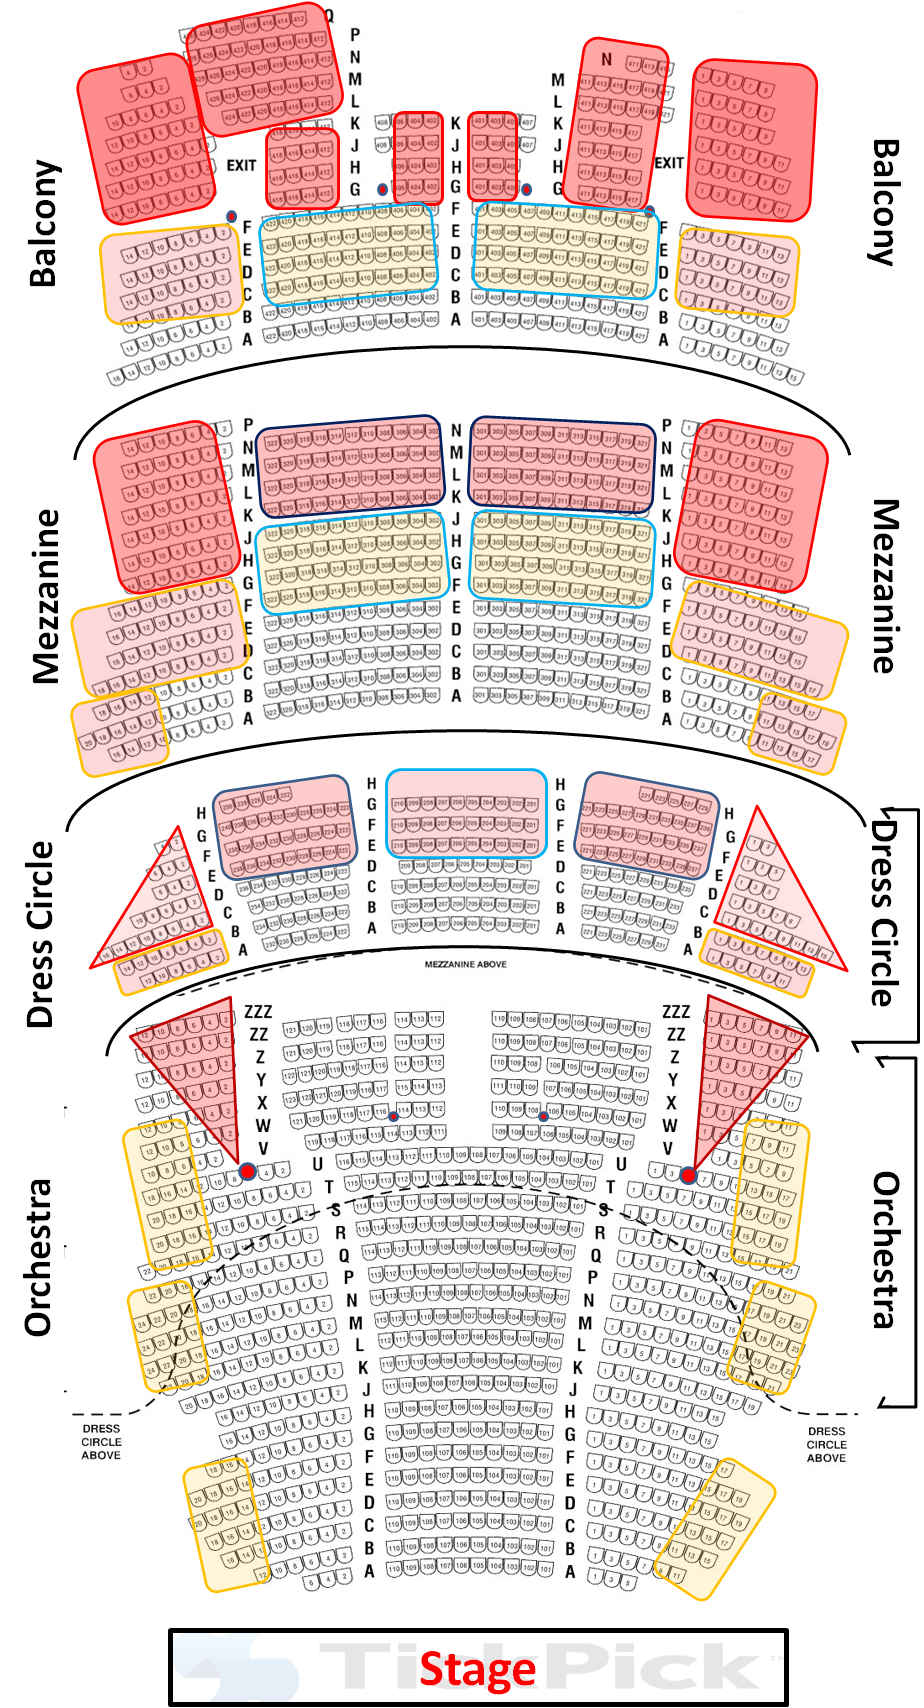 Cibc Theatre Seating Chart Hamilton Seat Views Tickpick Auditorium Seating Theater Seating Seat View